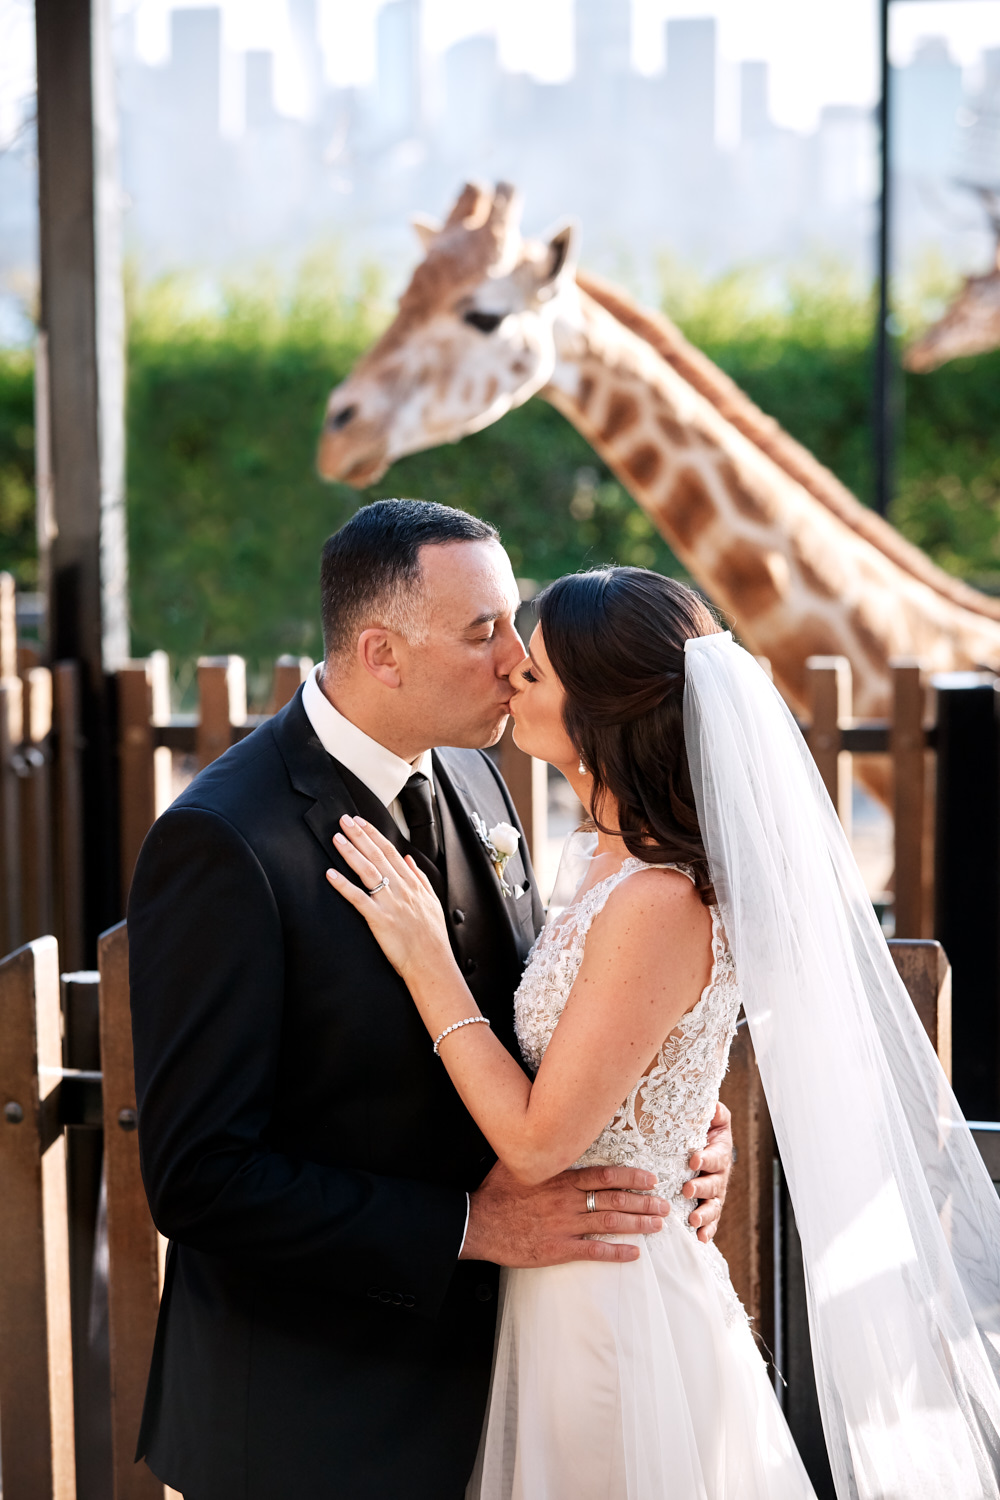 Bride and groom kissing in front of giraffe at Taronga Zoo by Blue Mountains wedding photographer Joshua Witheford